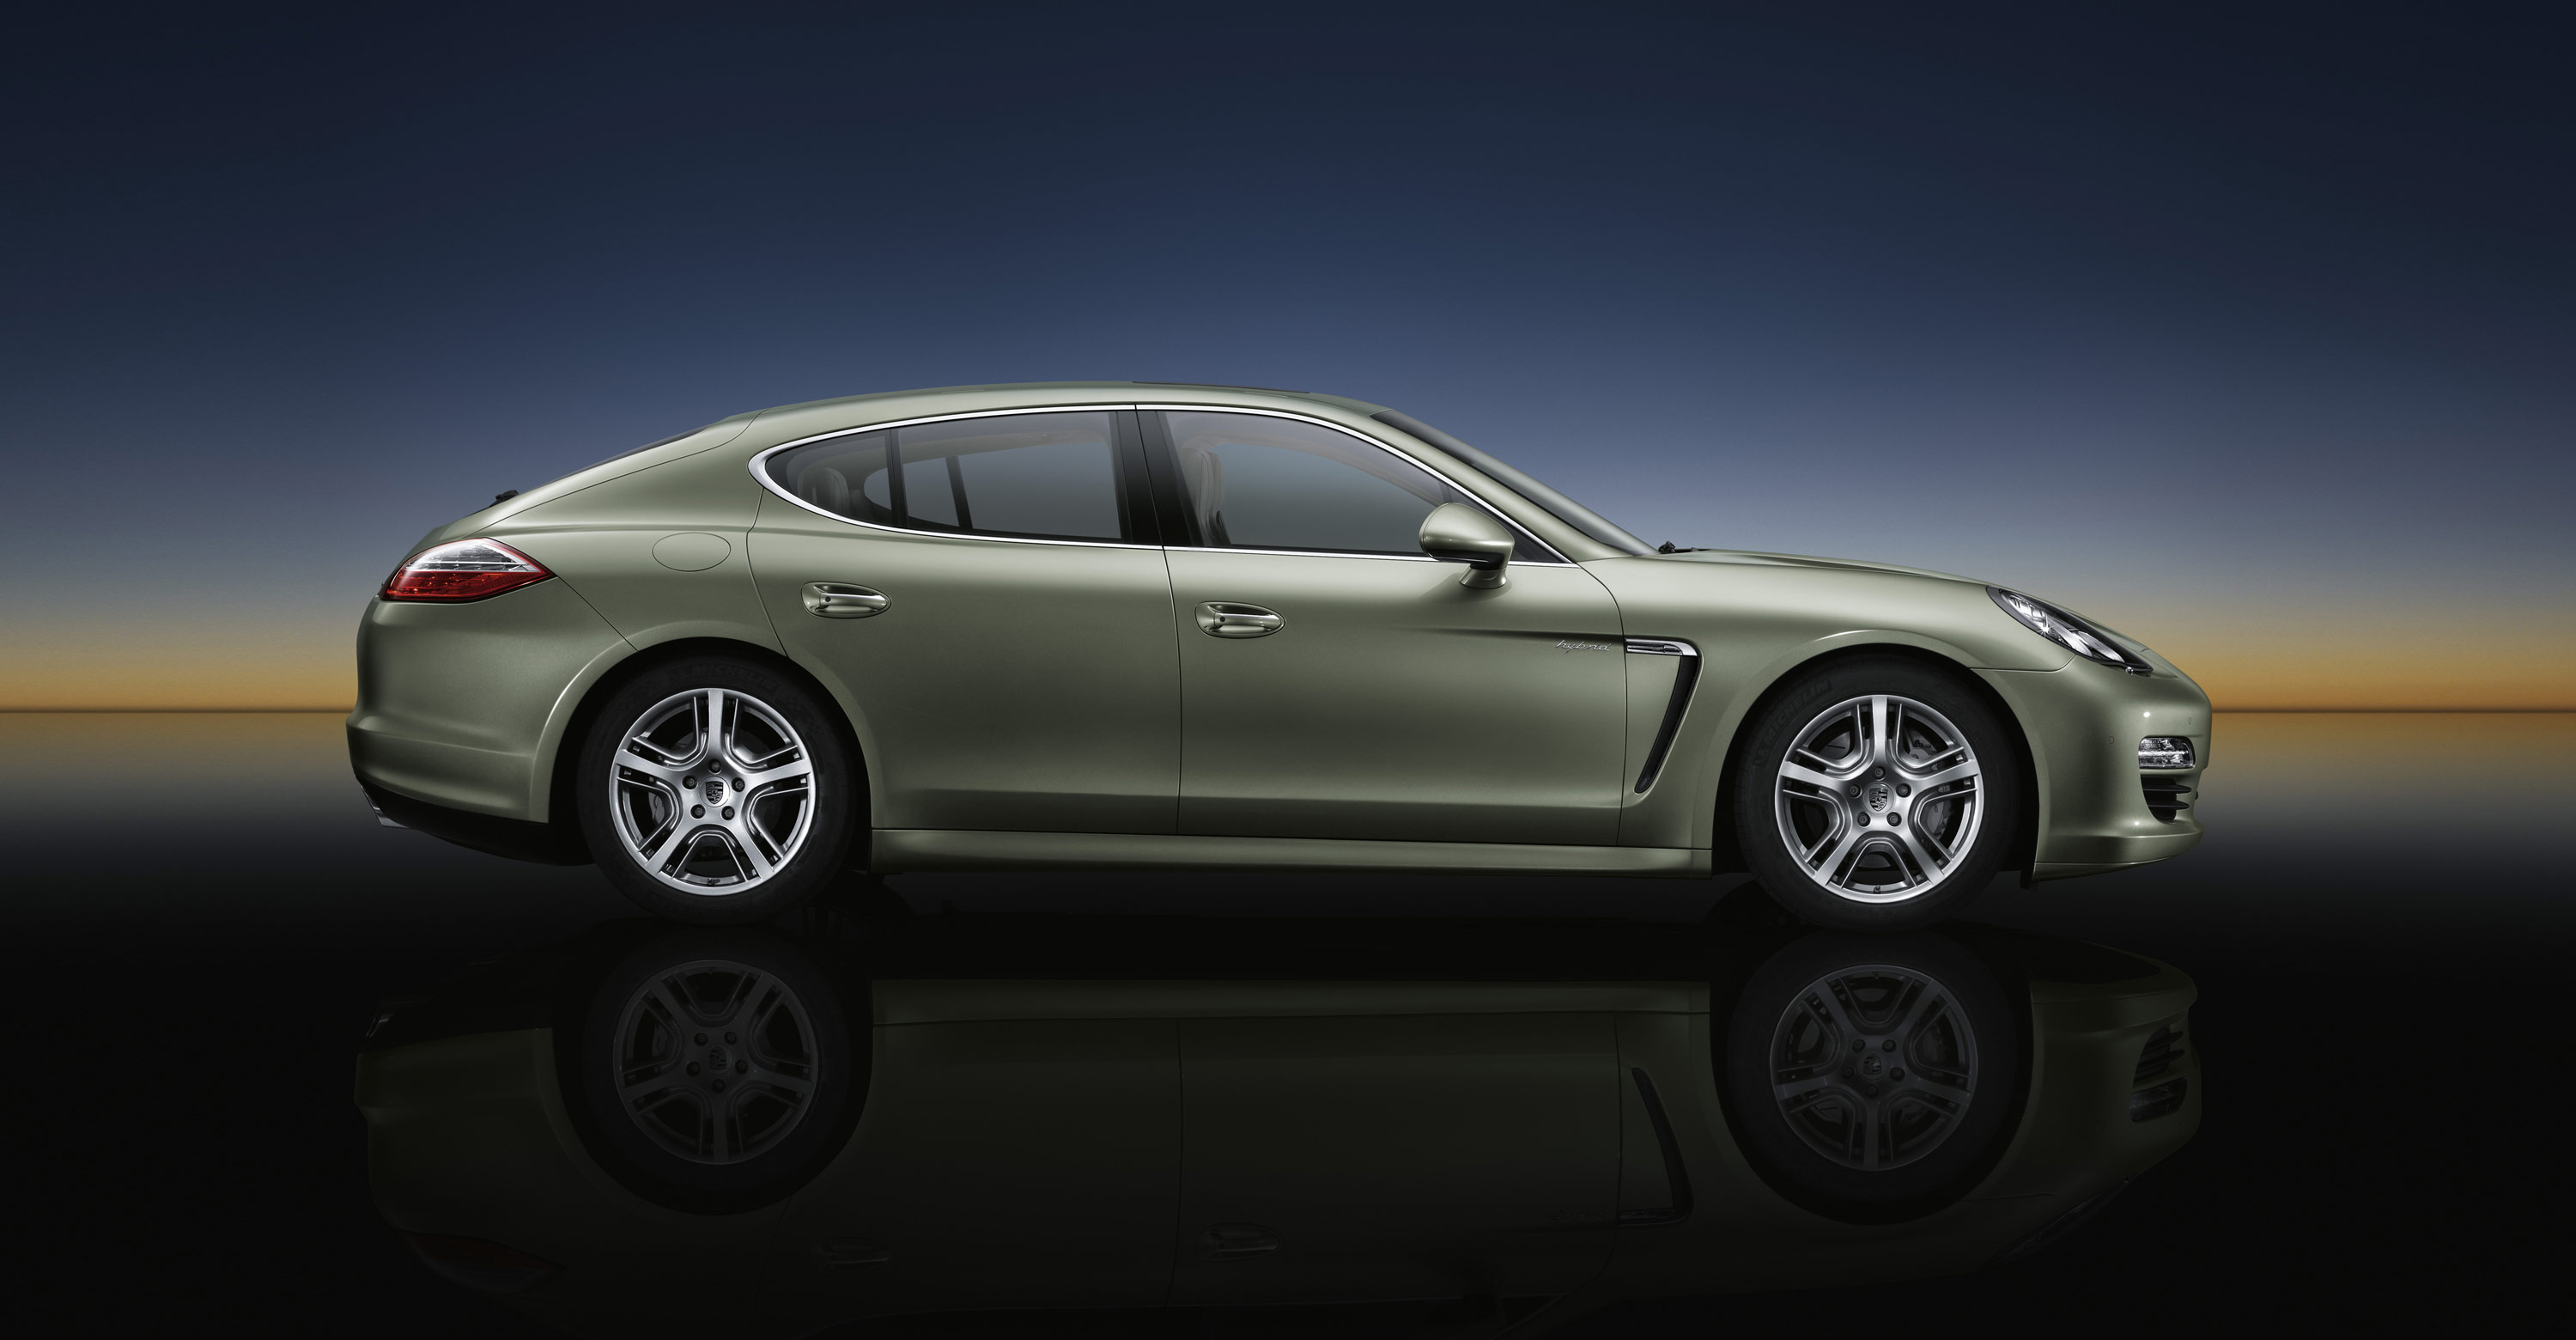 2012 Porsche Panamera S Hybrid Review   Top Speed. »